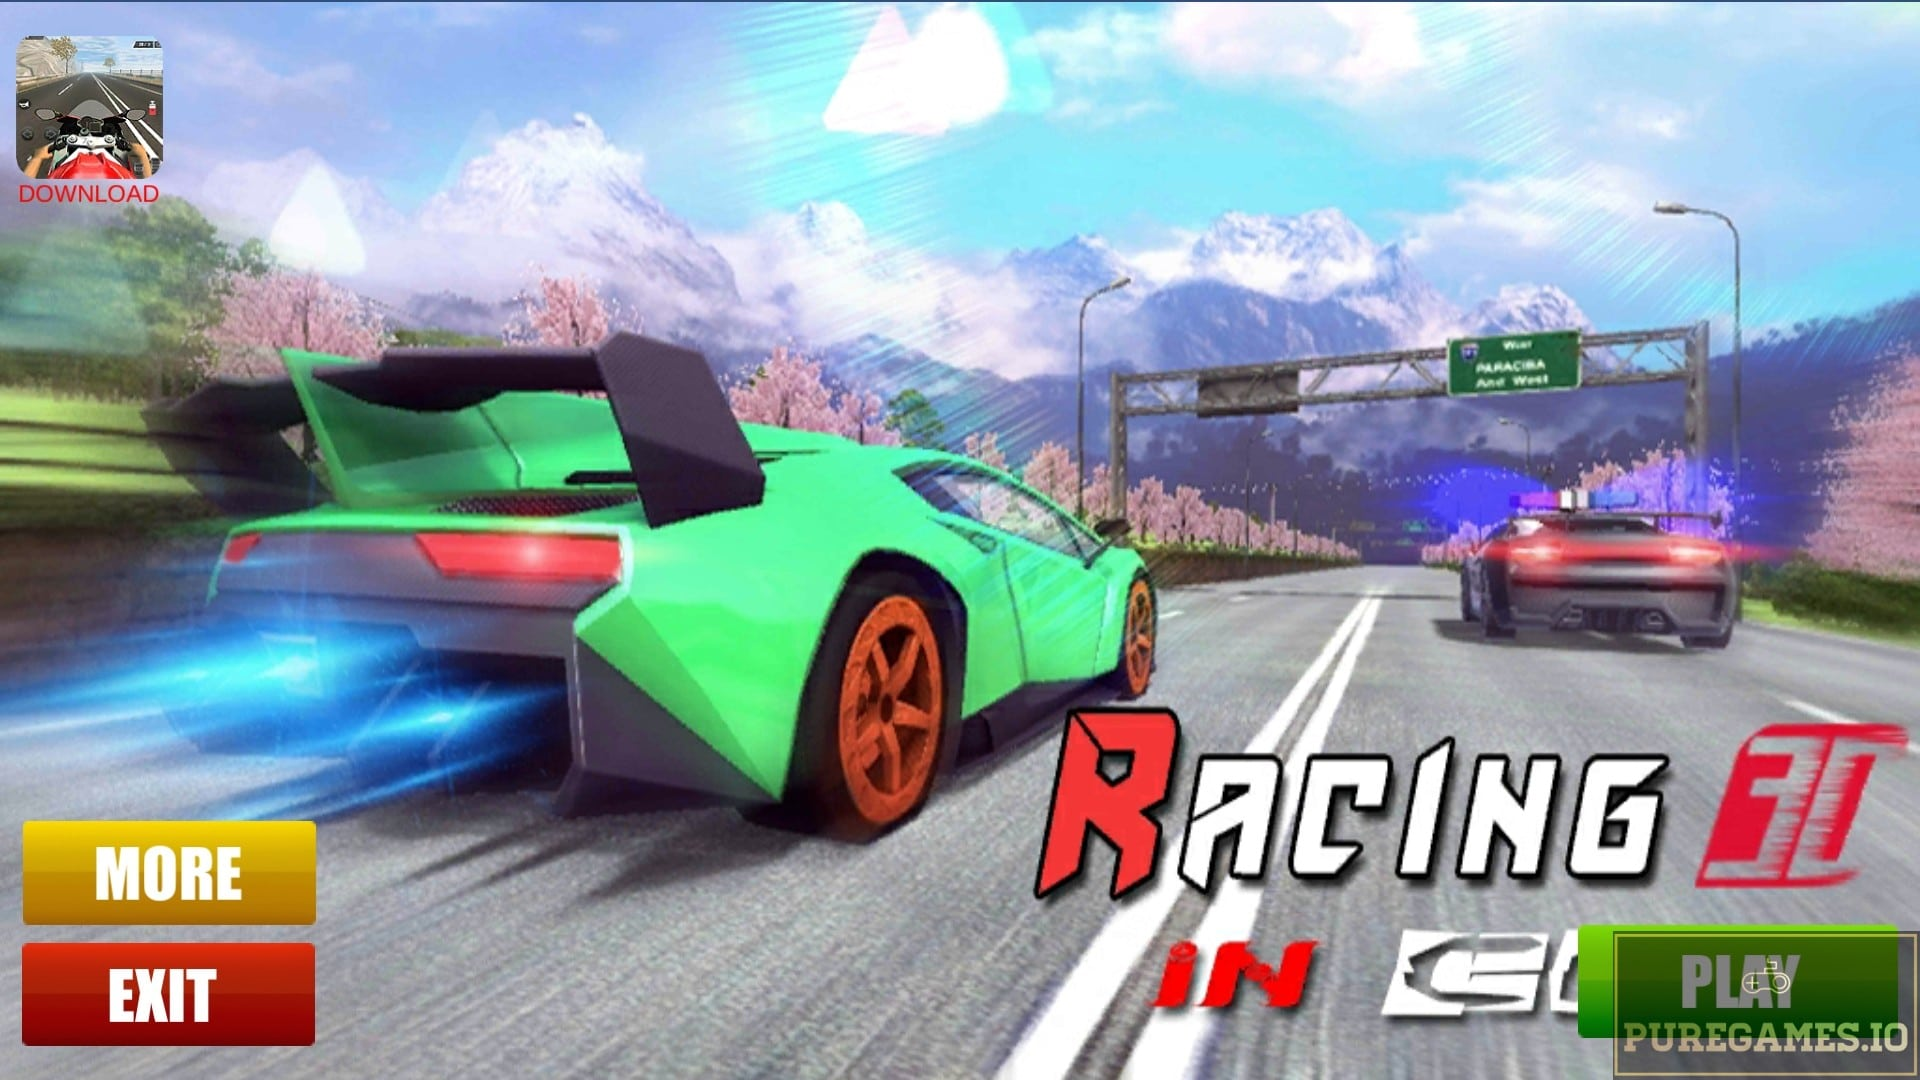 Download Racing In Car 3D APK - For Android 9